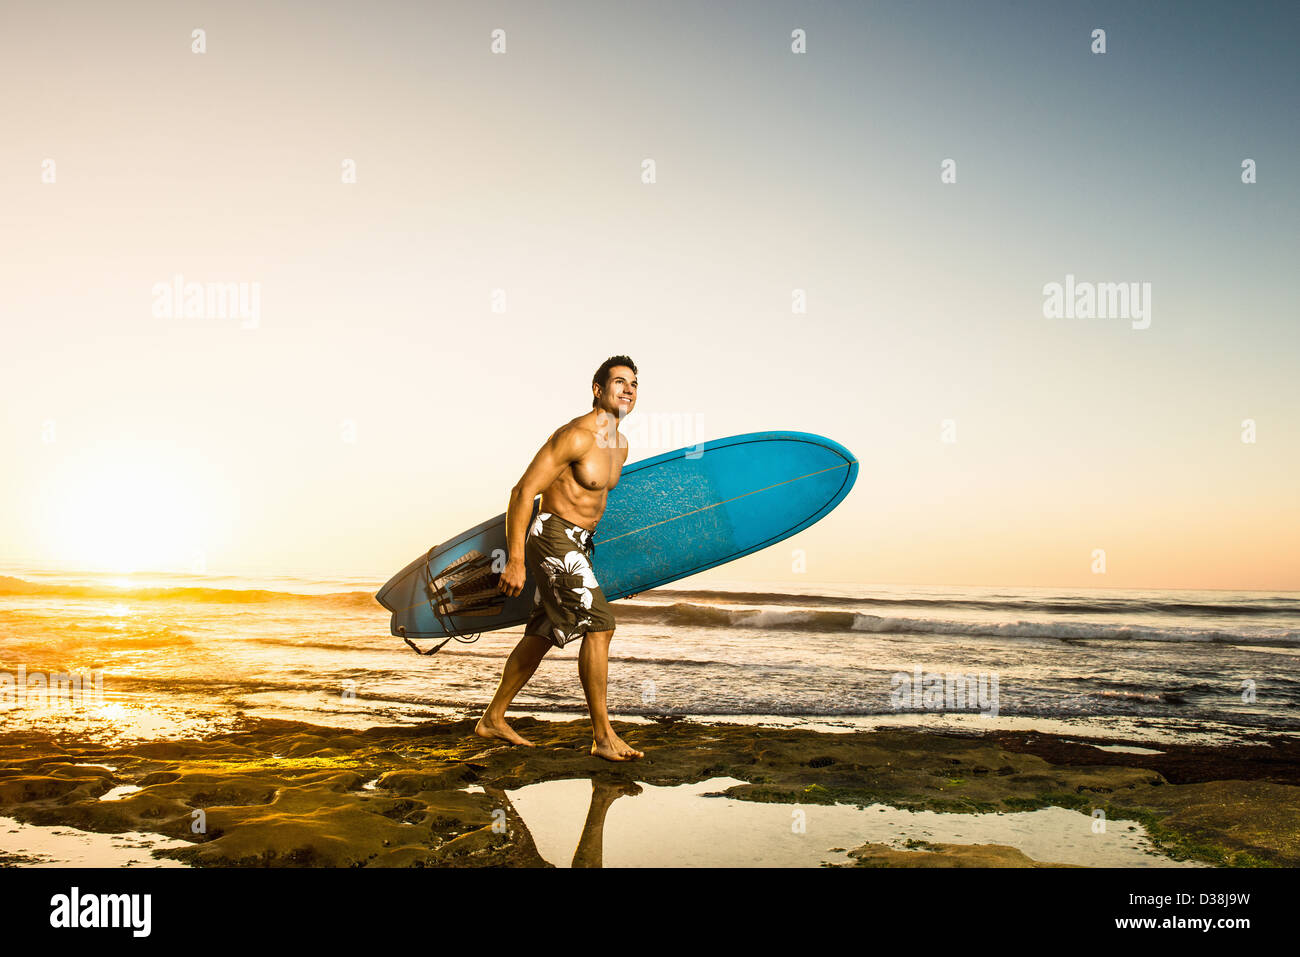 Man carrying surfboard on rocky beach - Stock Image